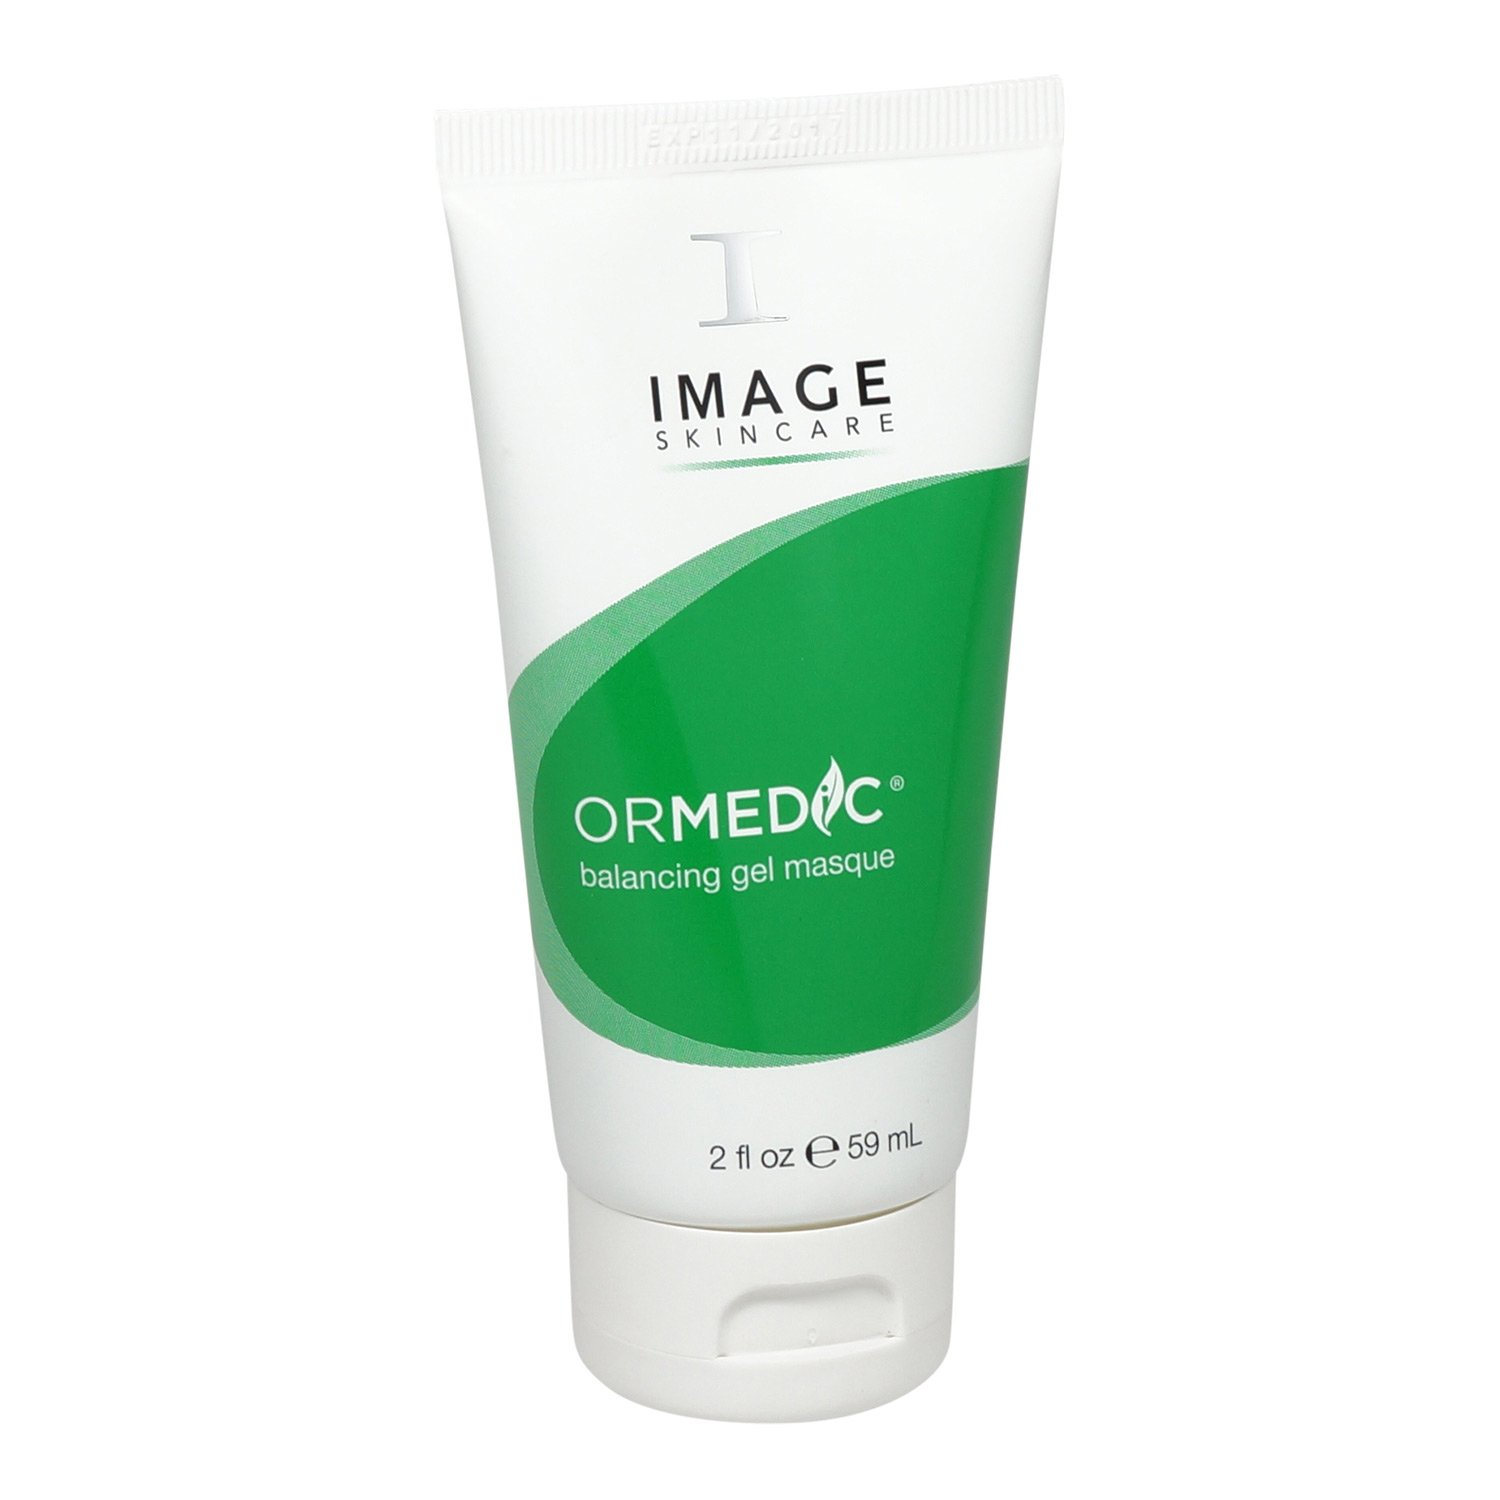 Image Skin care Ormedic Balancing Gel Masque 2 oz Ima-6903